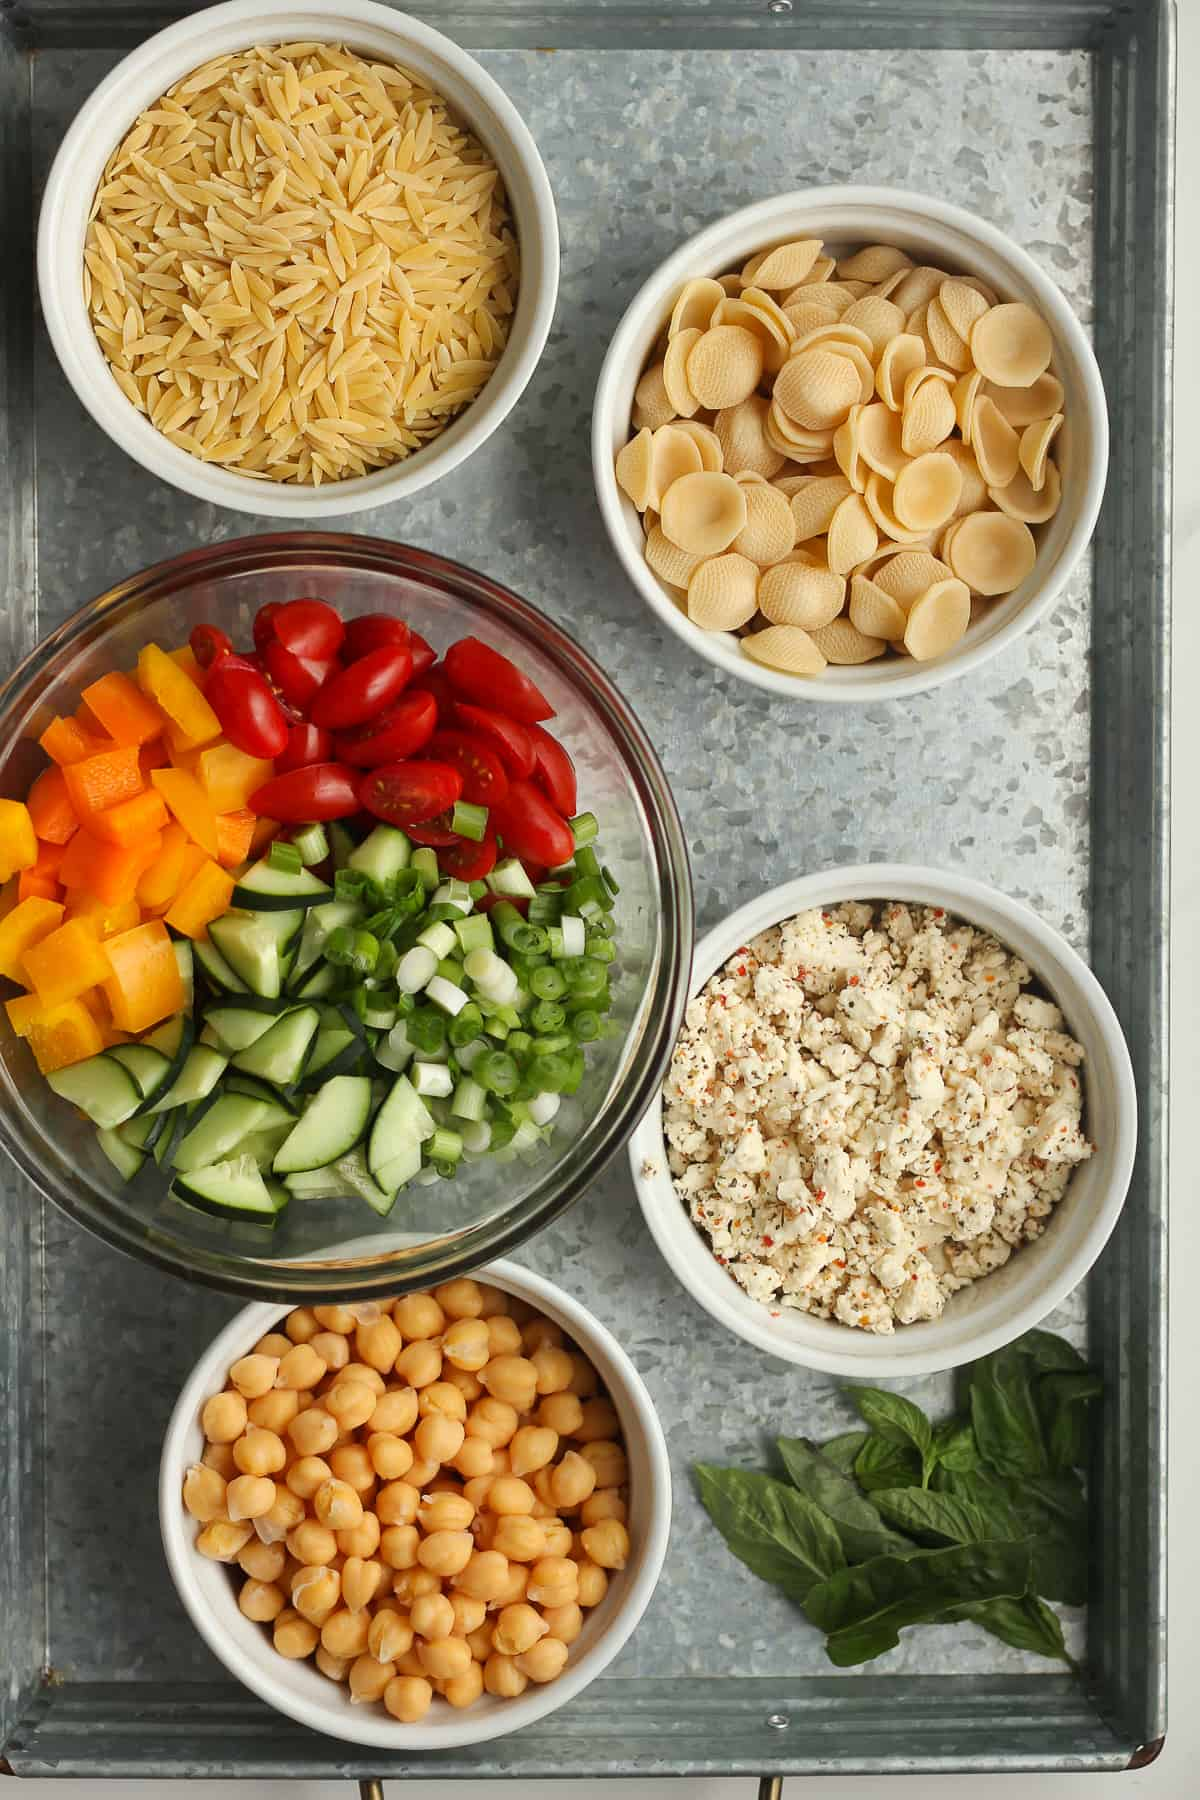 A tray of the pasta salad ingredients.